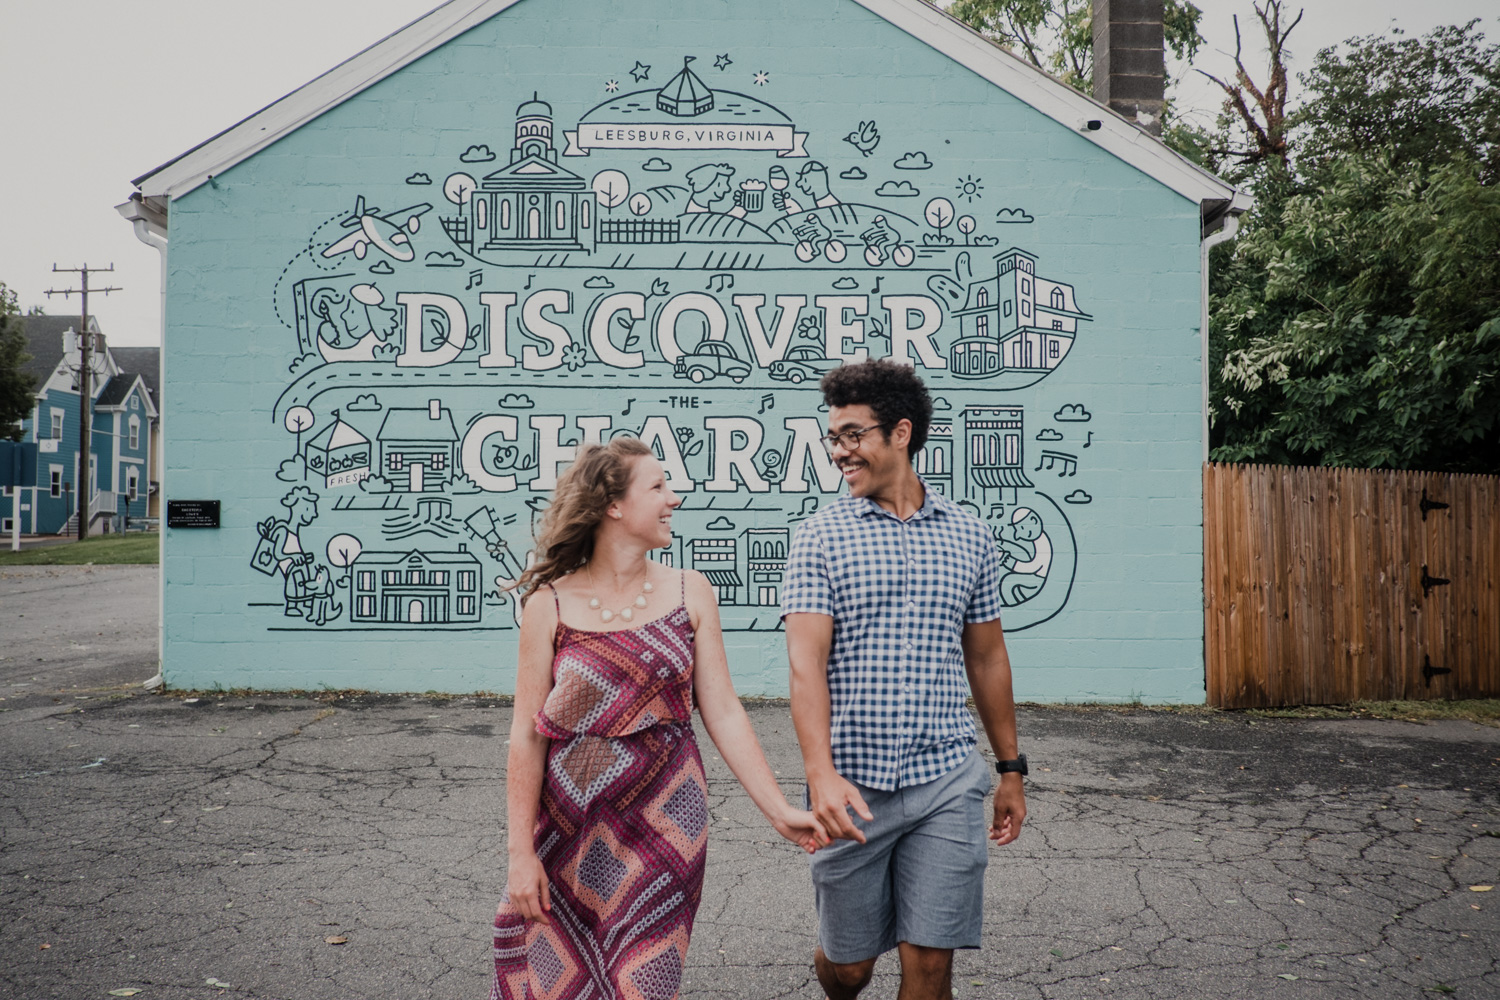 Couple walks away from the Leesburg Discover The Charm mural